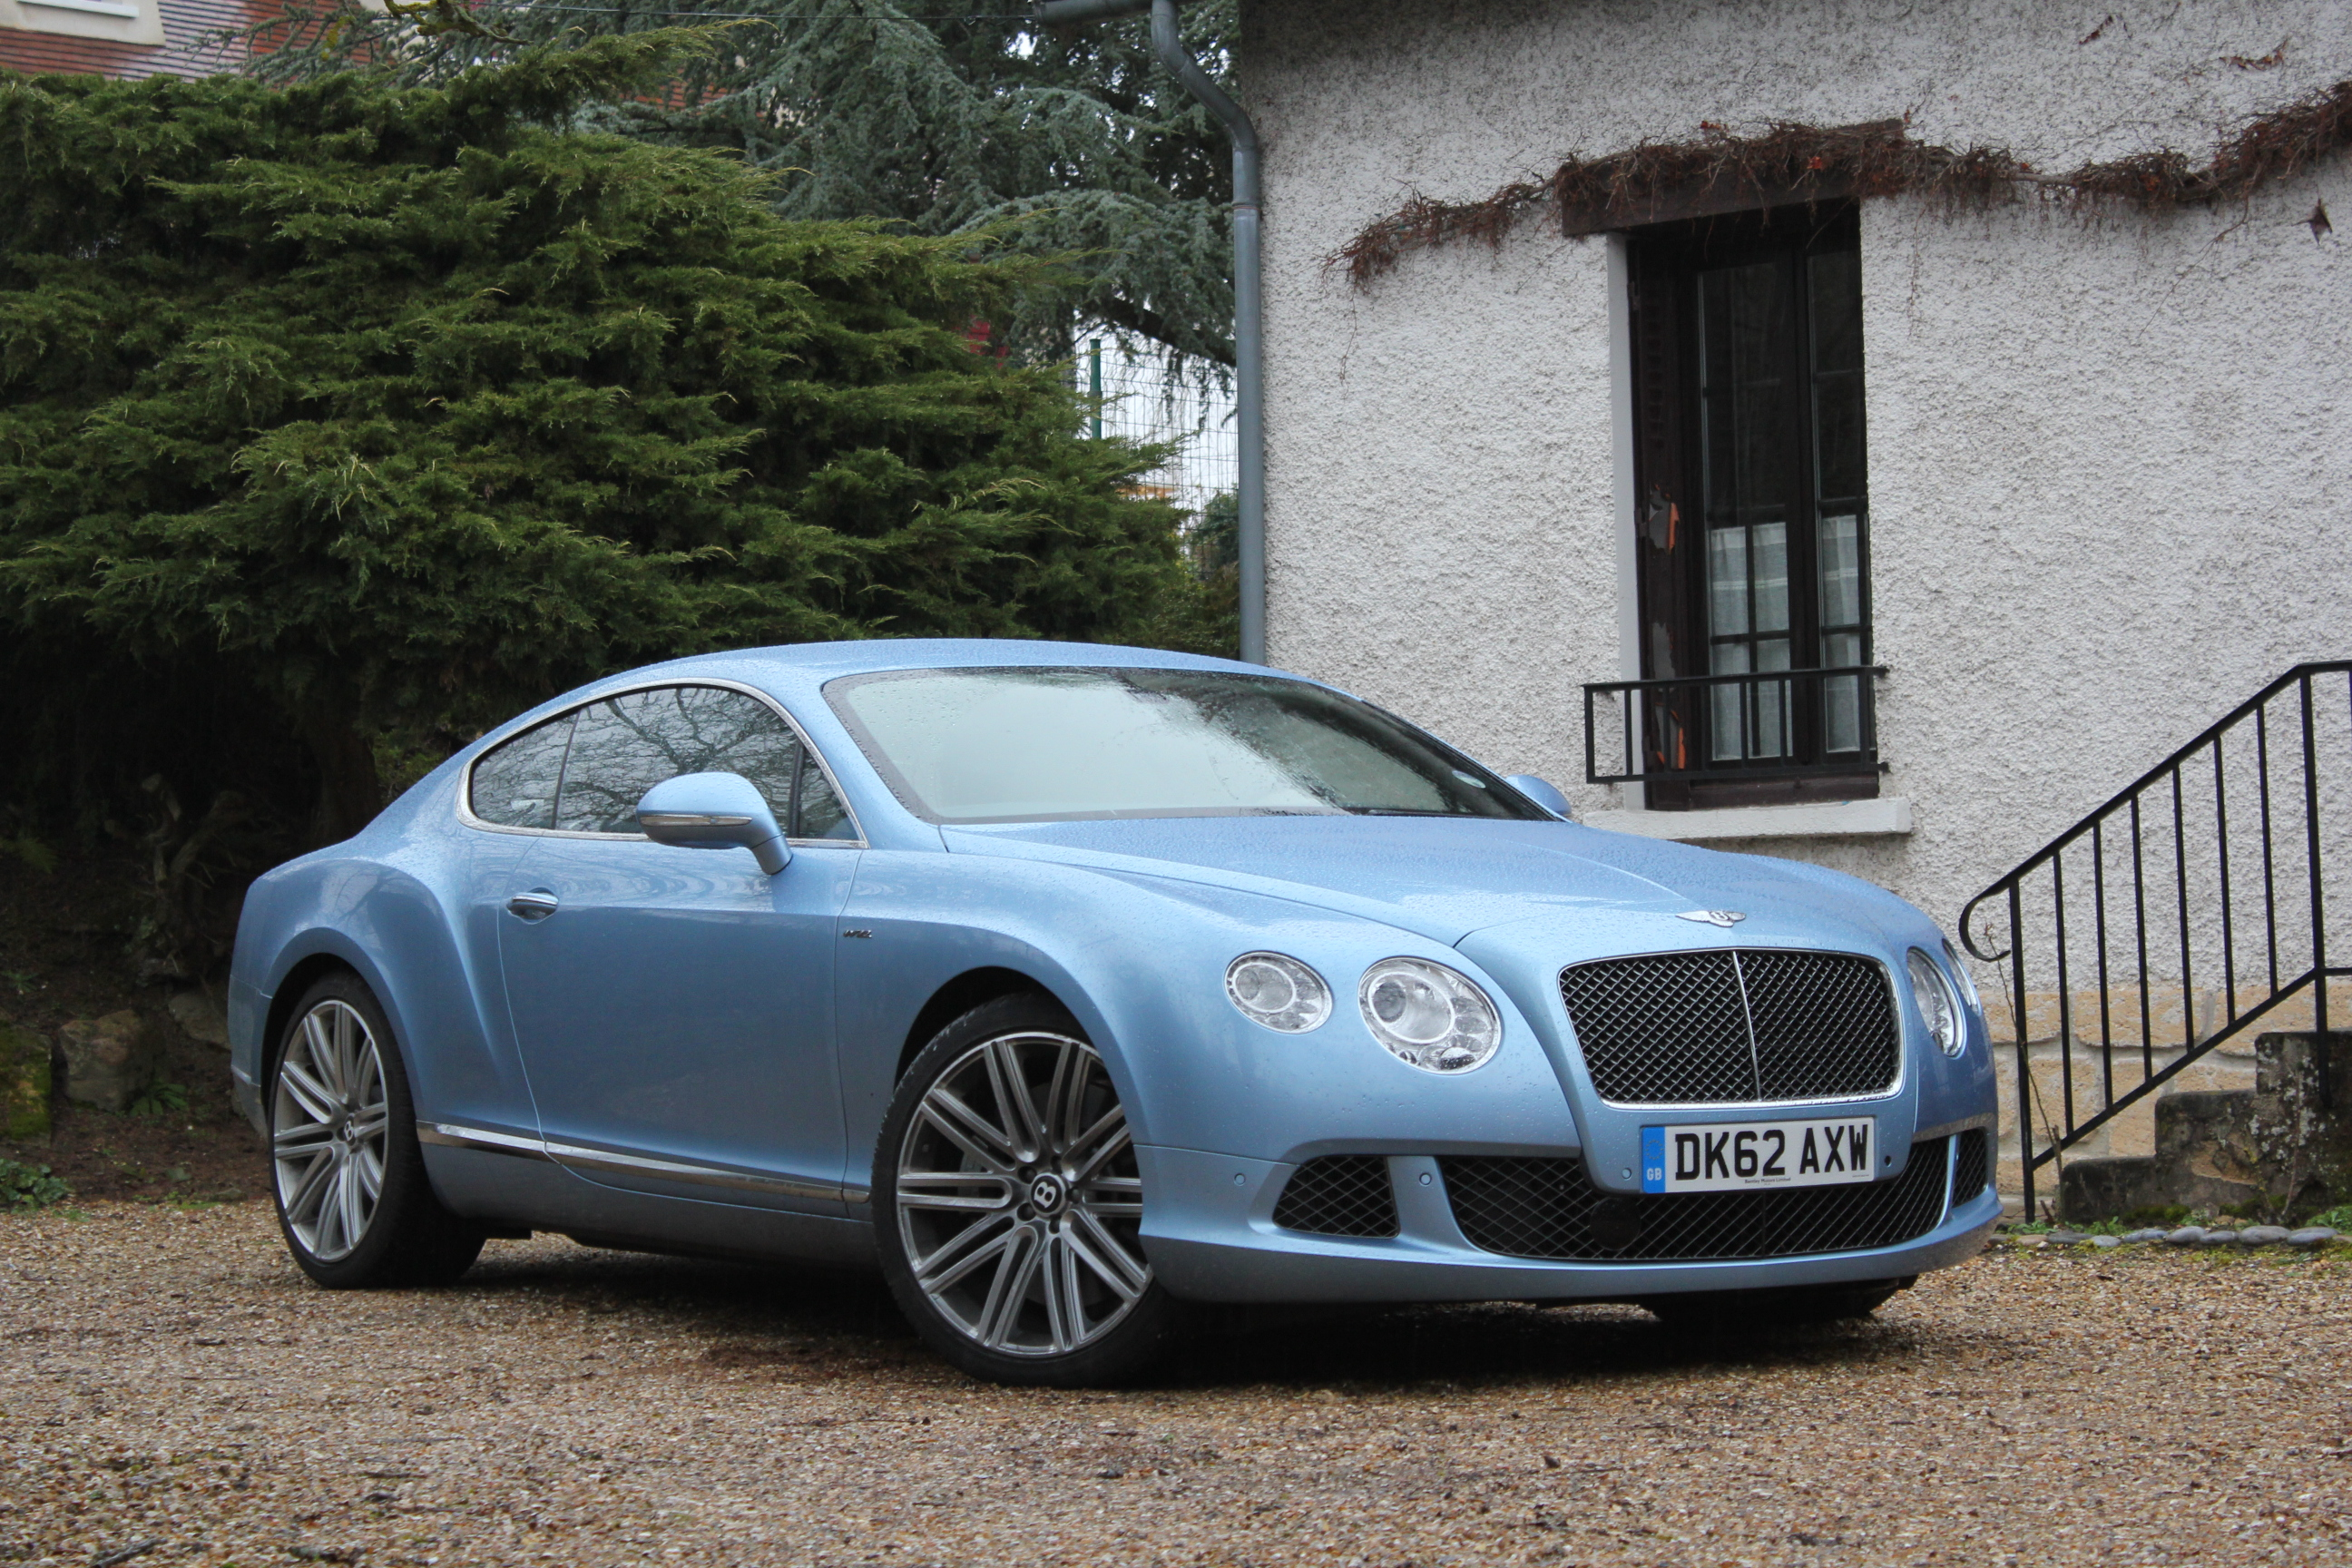 http://images.caradisiac.com/images/5/2/6/3/85263/S0-Essai-video-Bentley-Continental-GT-Speed-so-scandalous-288629.jpg